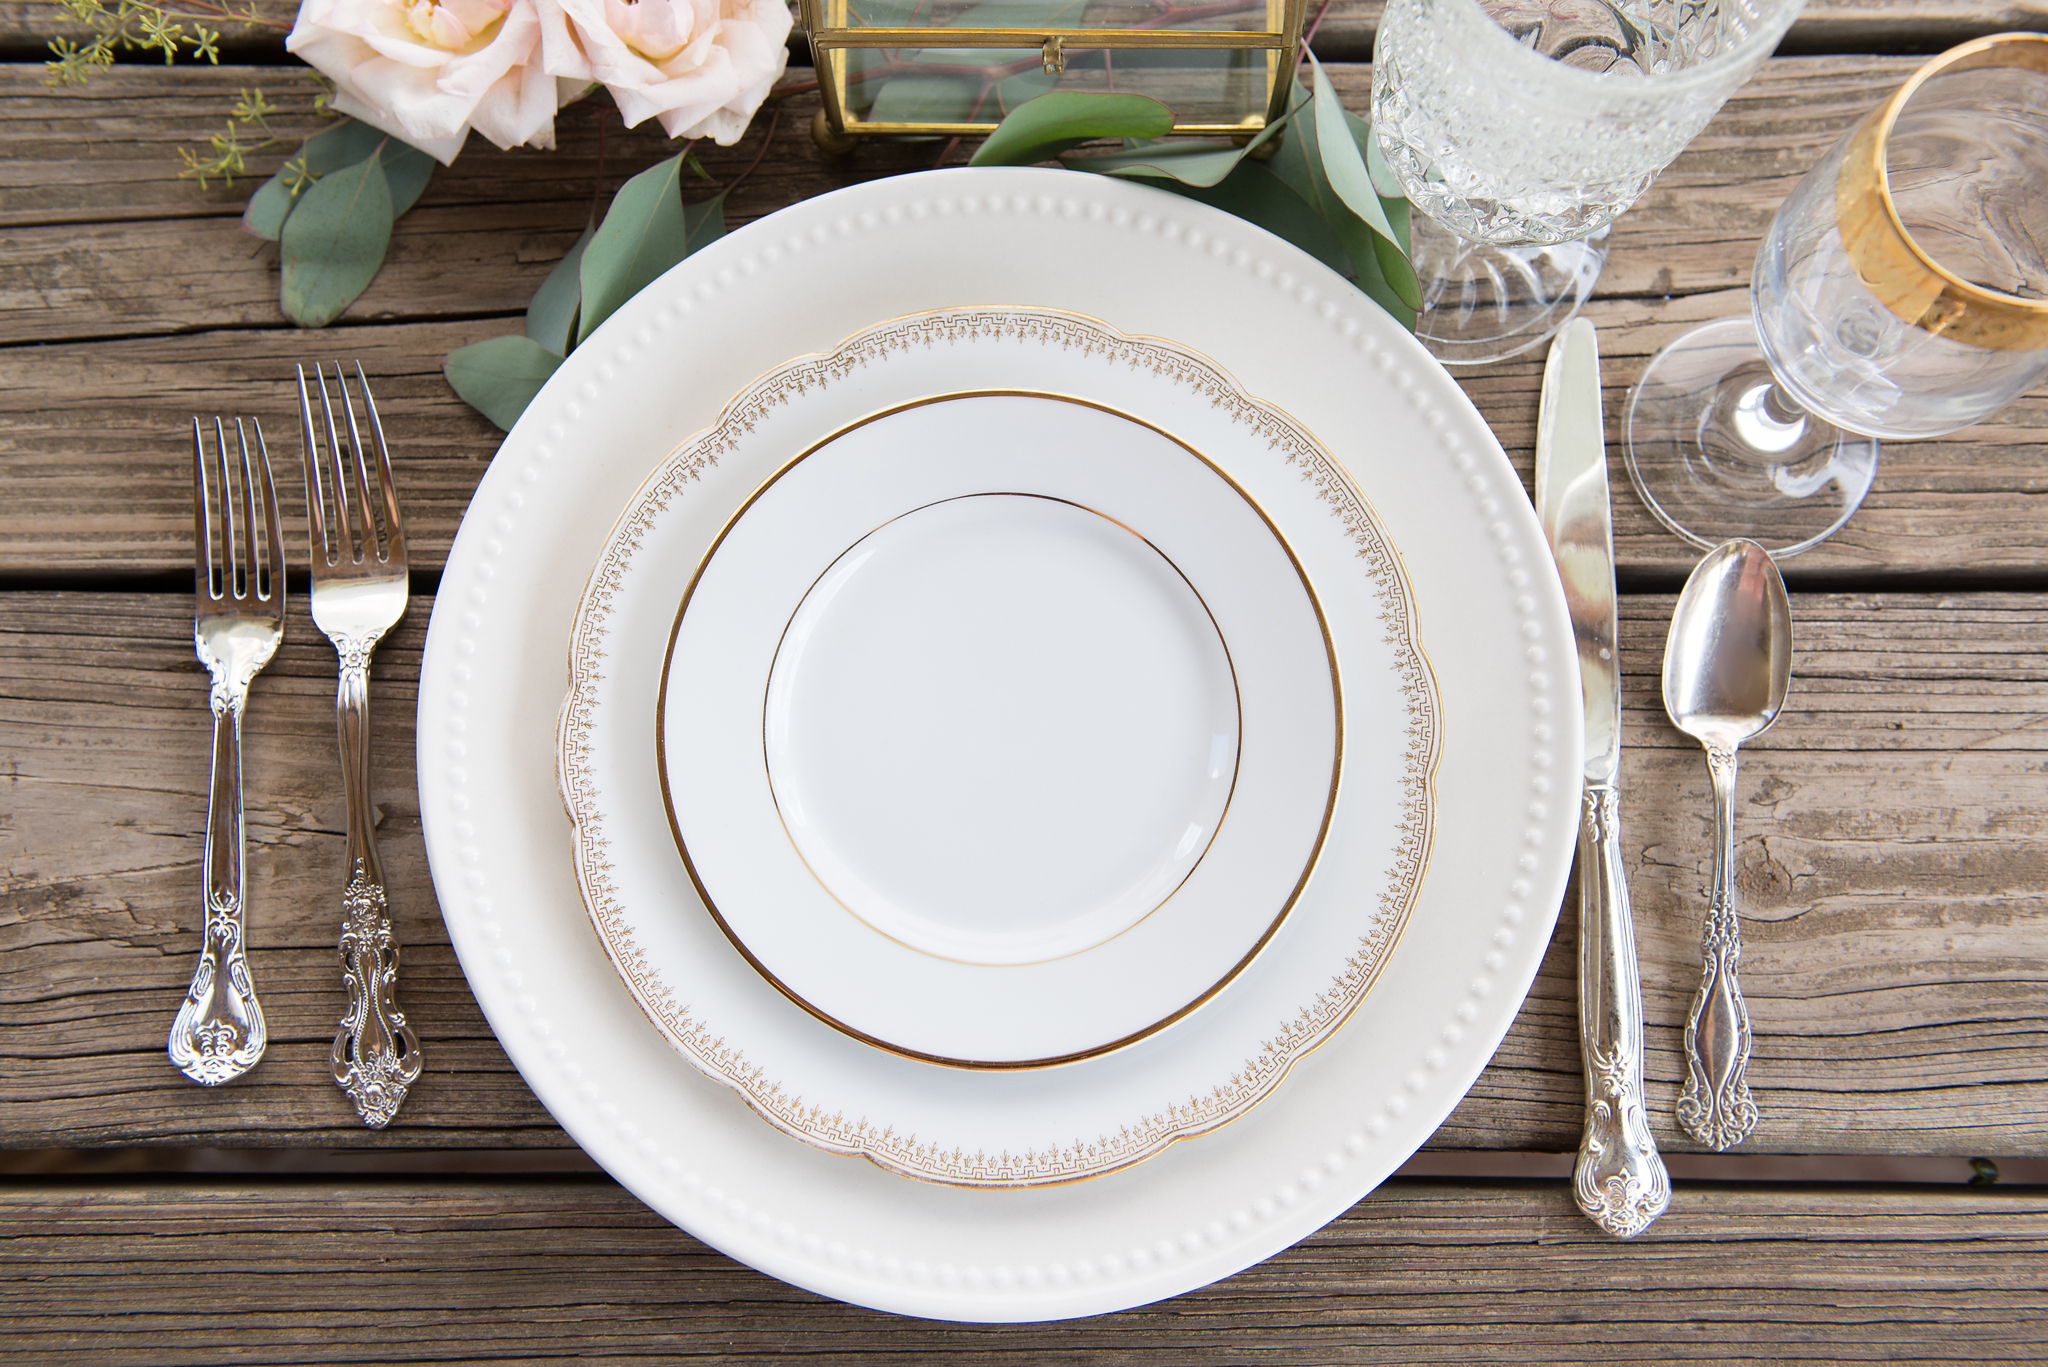 Wedding China Rentals Tampa Florida